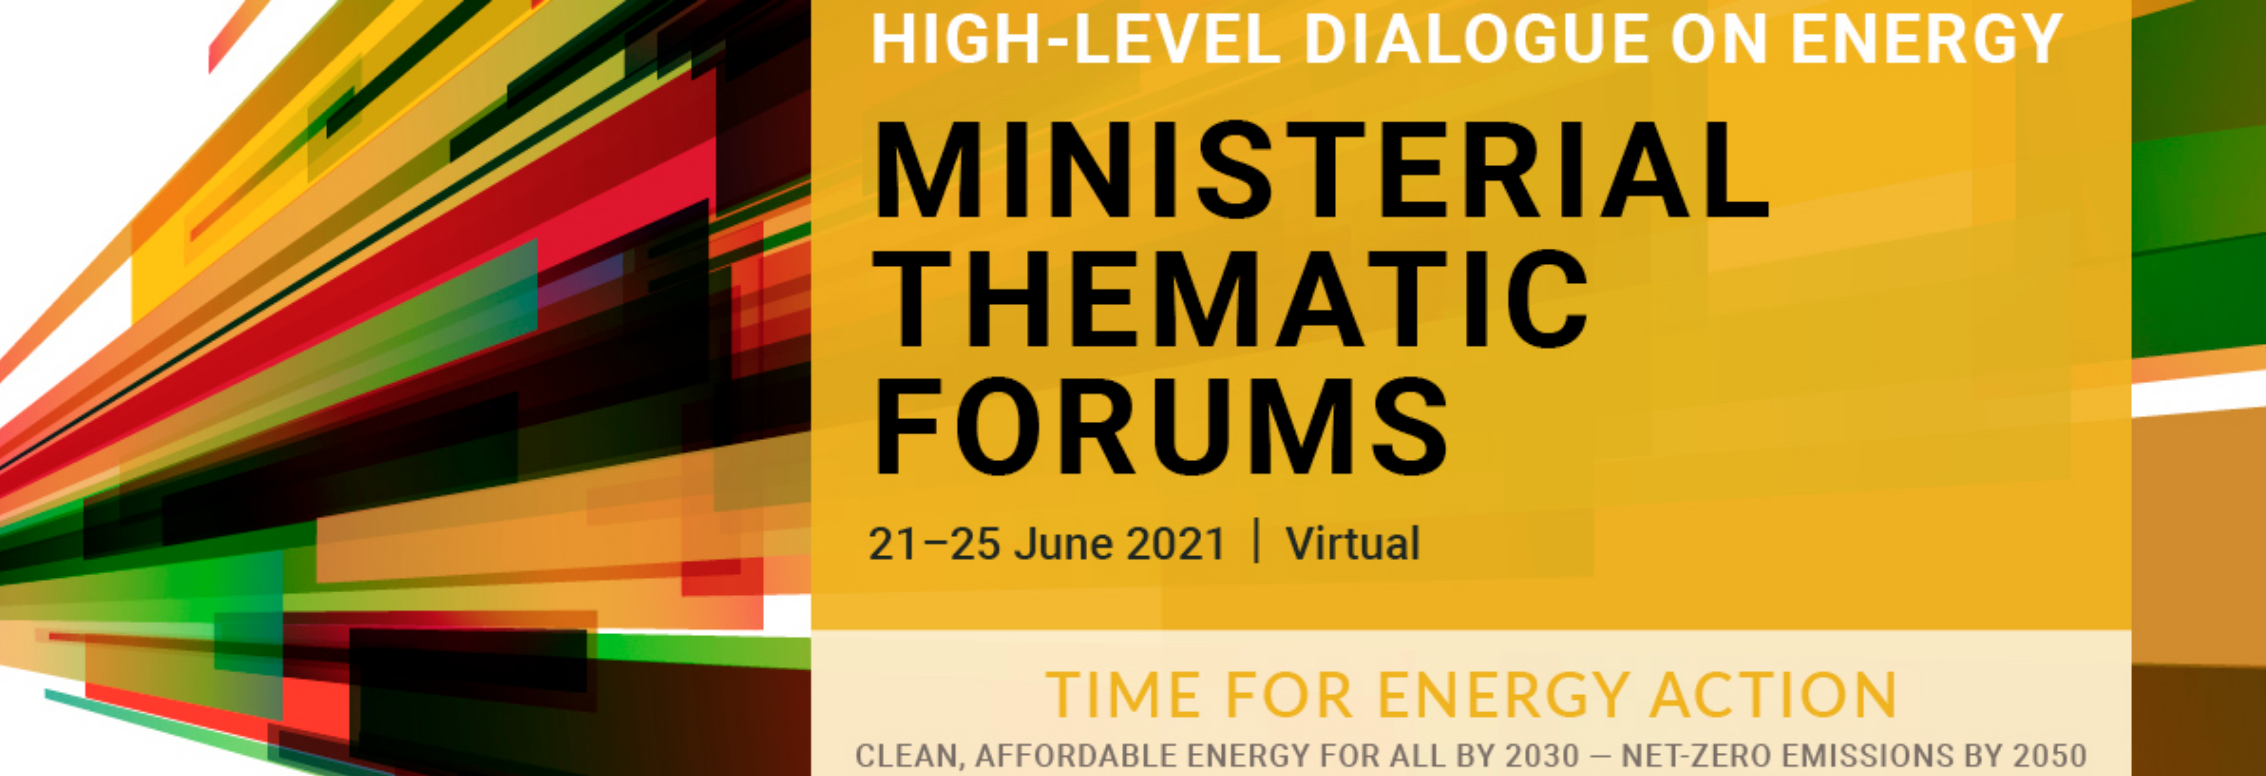 Ministerial-level Thematic Forums: Gender and Energy side events